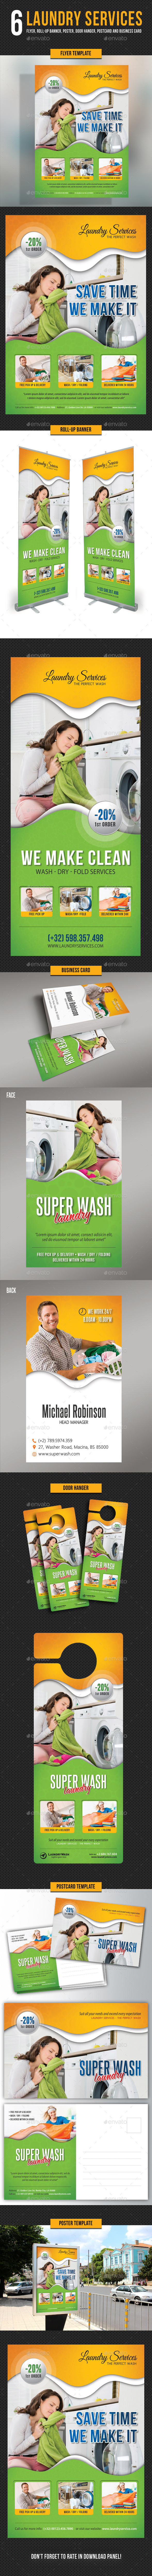 6 in 1 Laundry Services Bundle V01 - Print Templates